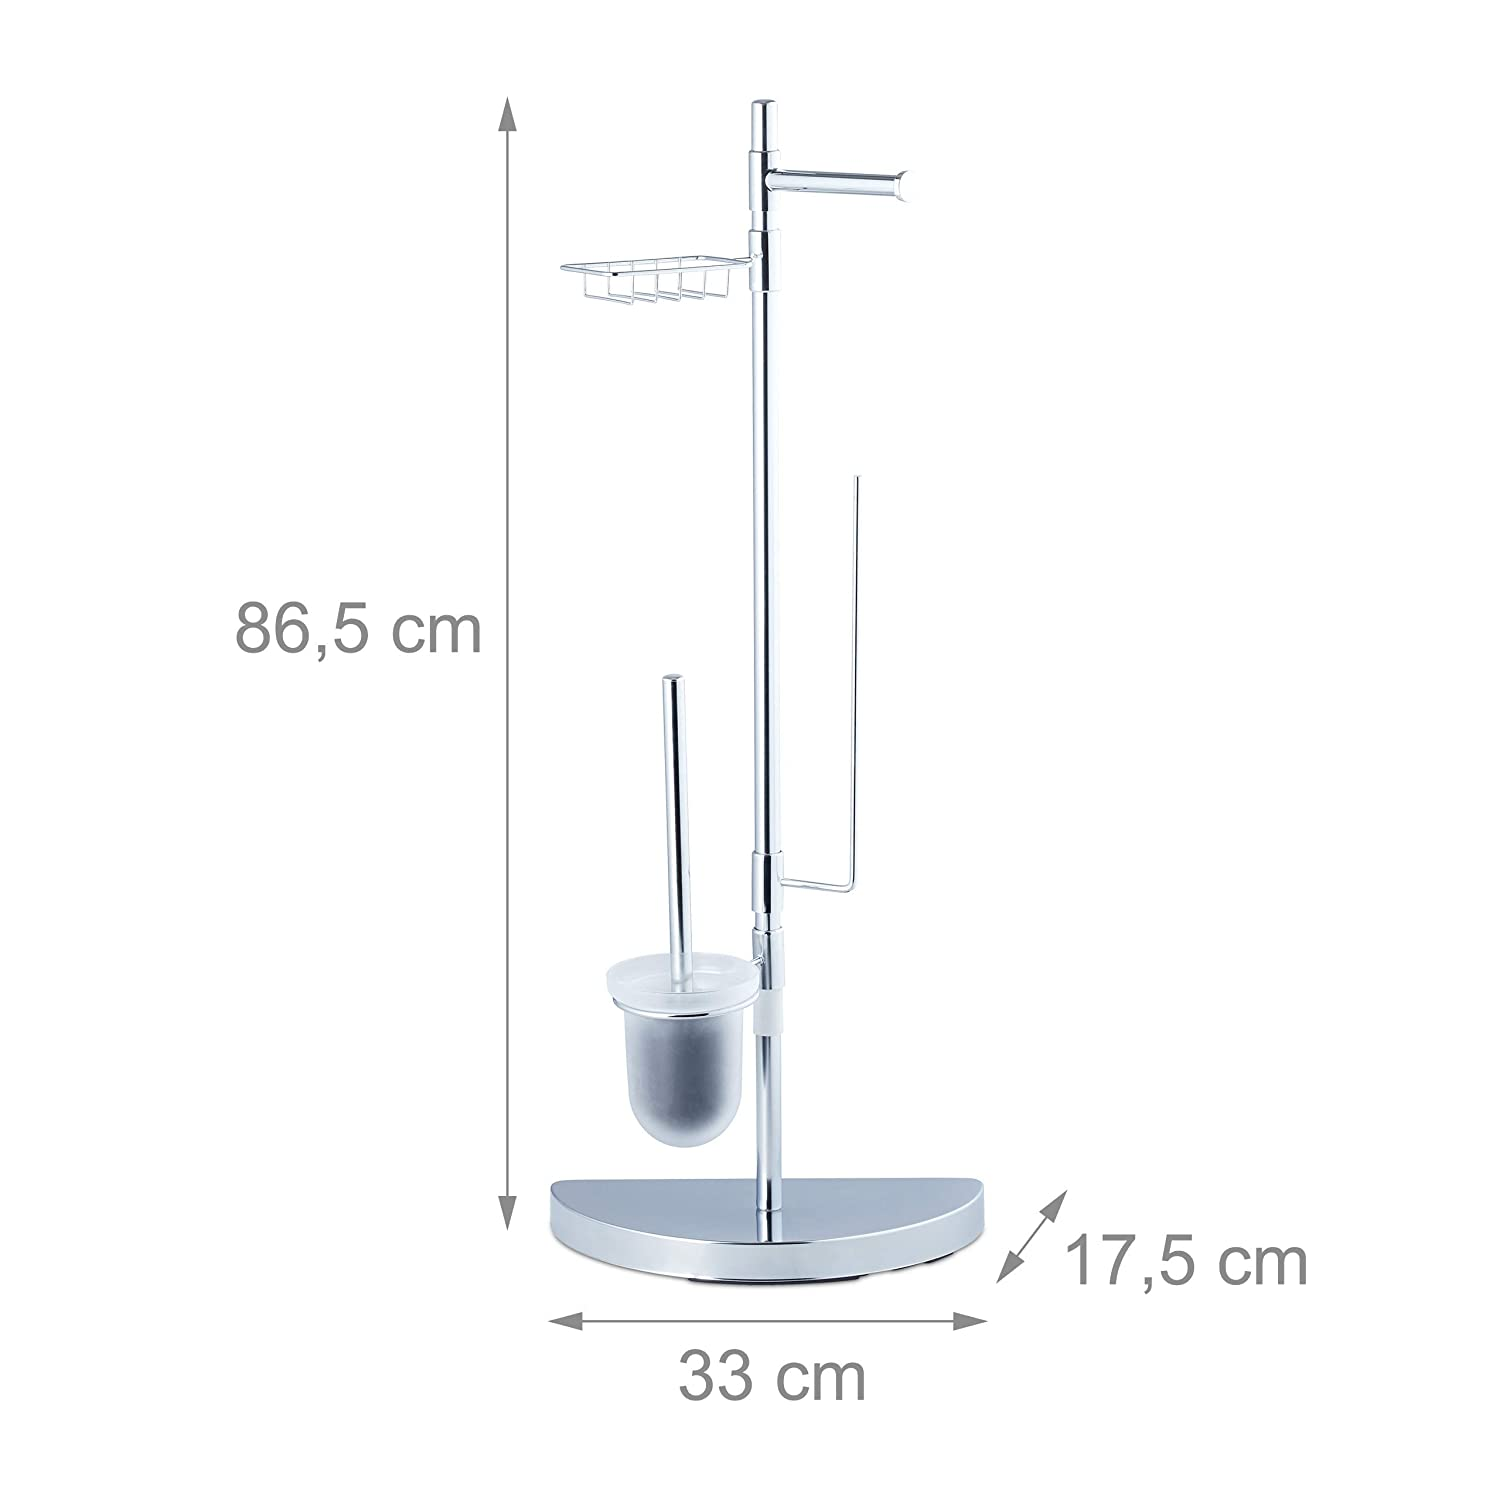 Toilet Roll Holder 360/° Swivel Parts Relaxdays Universal Accessory Set Brush with Container Chrome 86 cm Tall